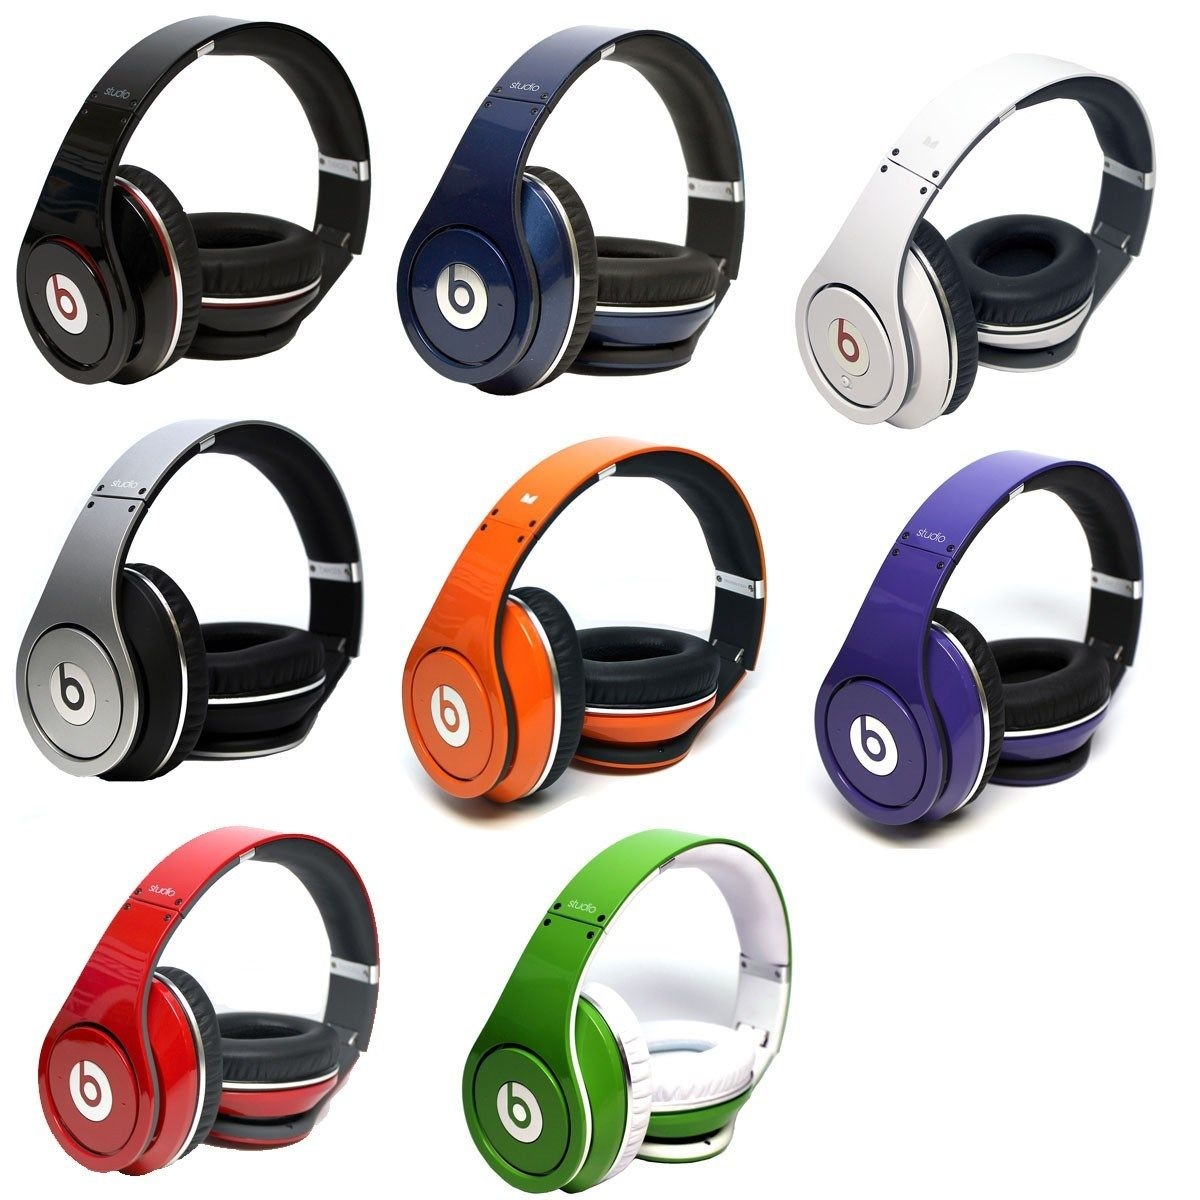 Studio Beats By Dr Dre